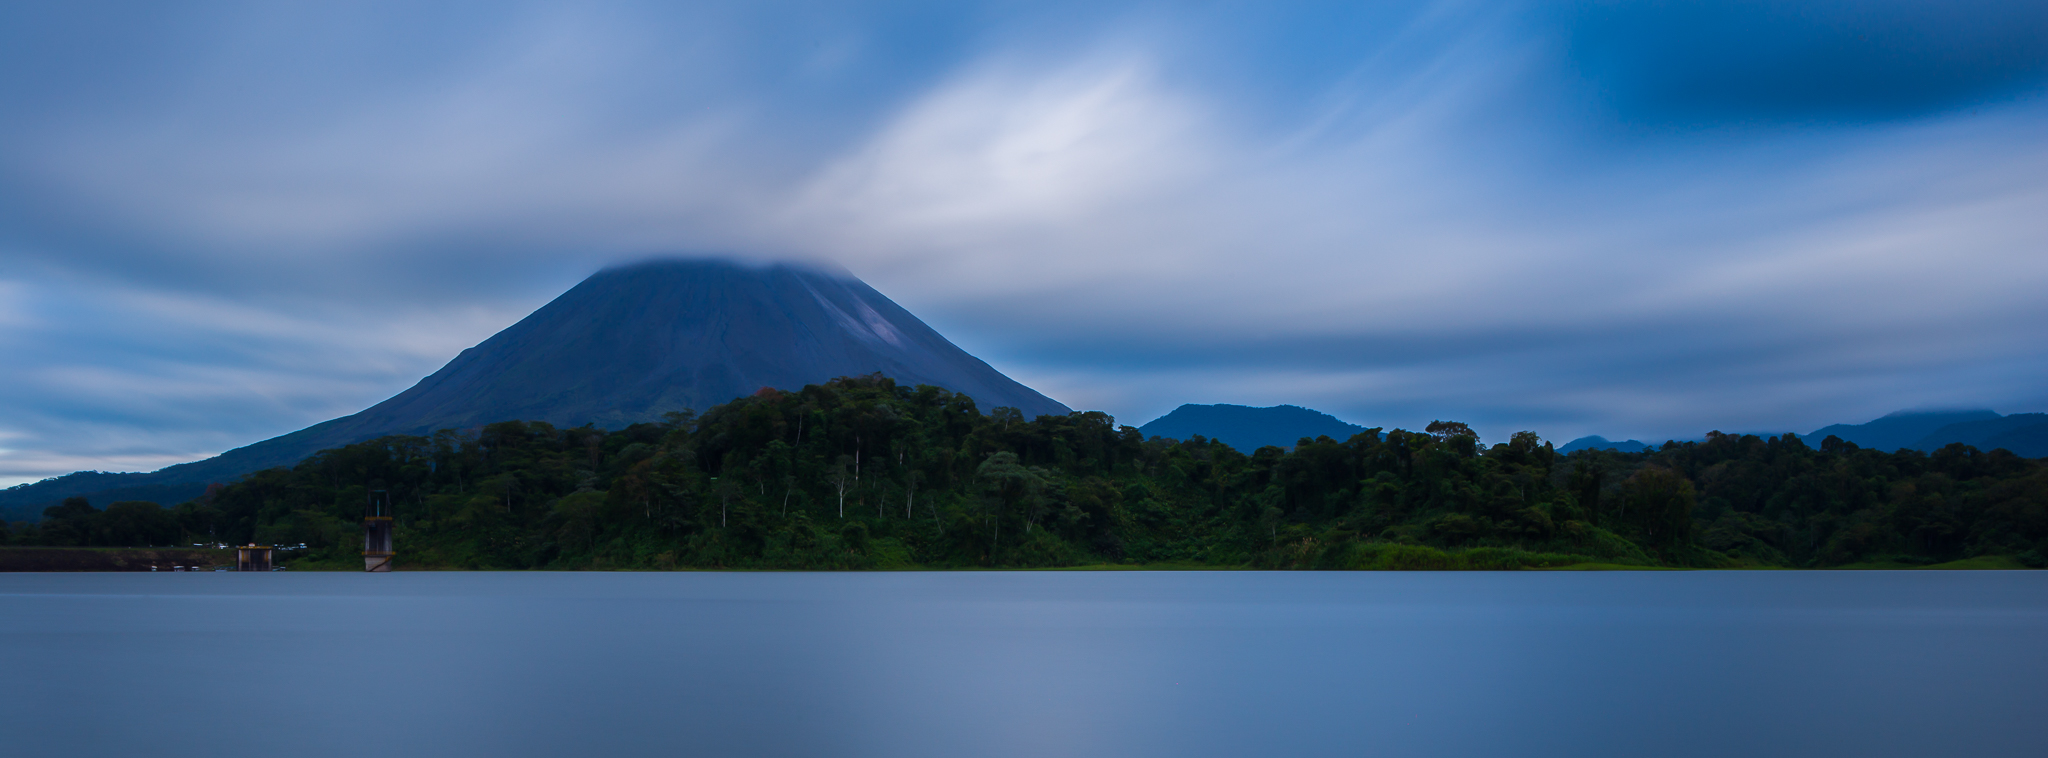 Lake Arenal-I used a Lee Big Stopper to create a long exposure during the day. This creates the glassy water effect and blurs the motion of the clouds.